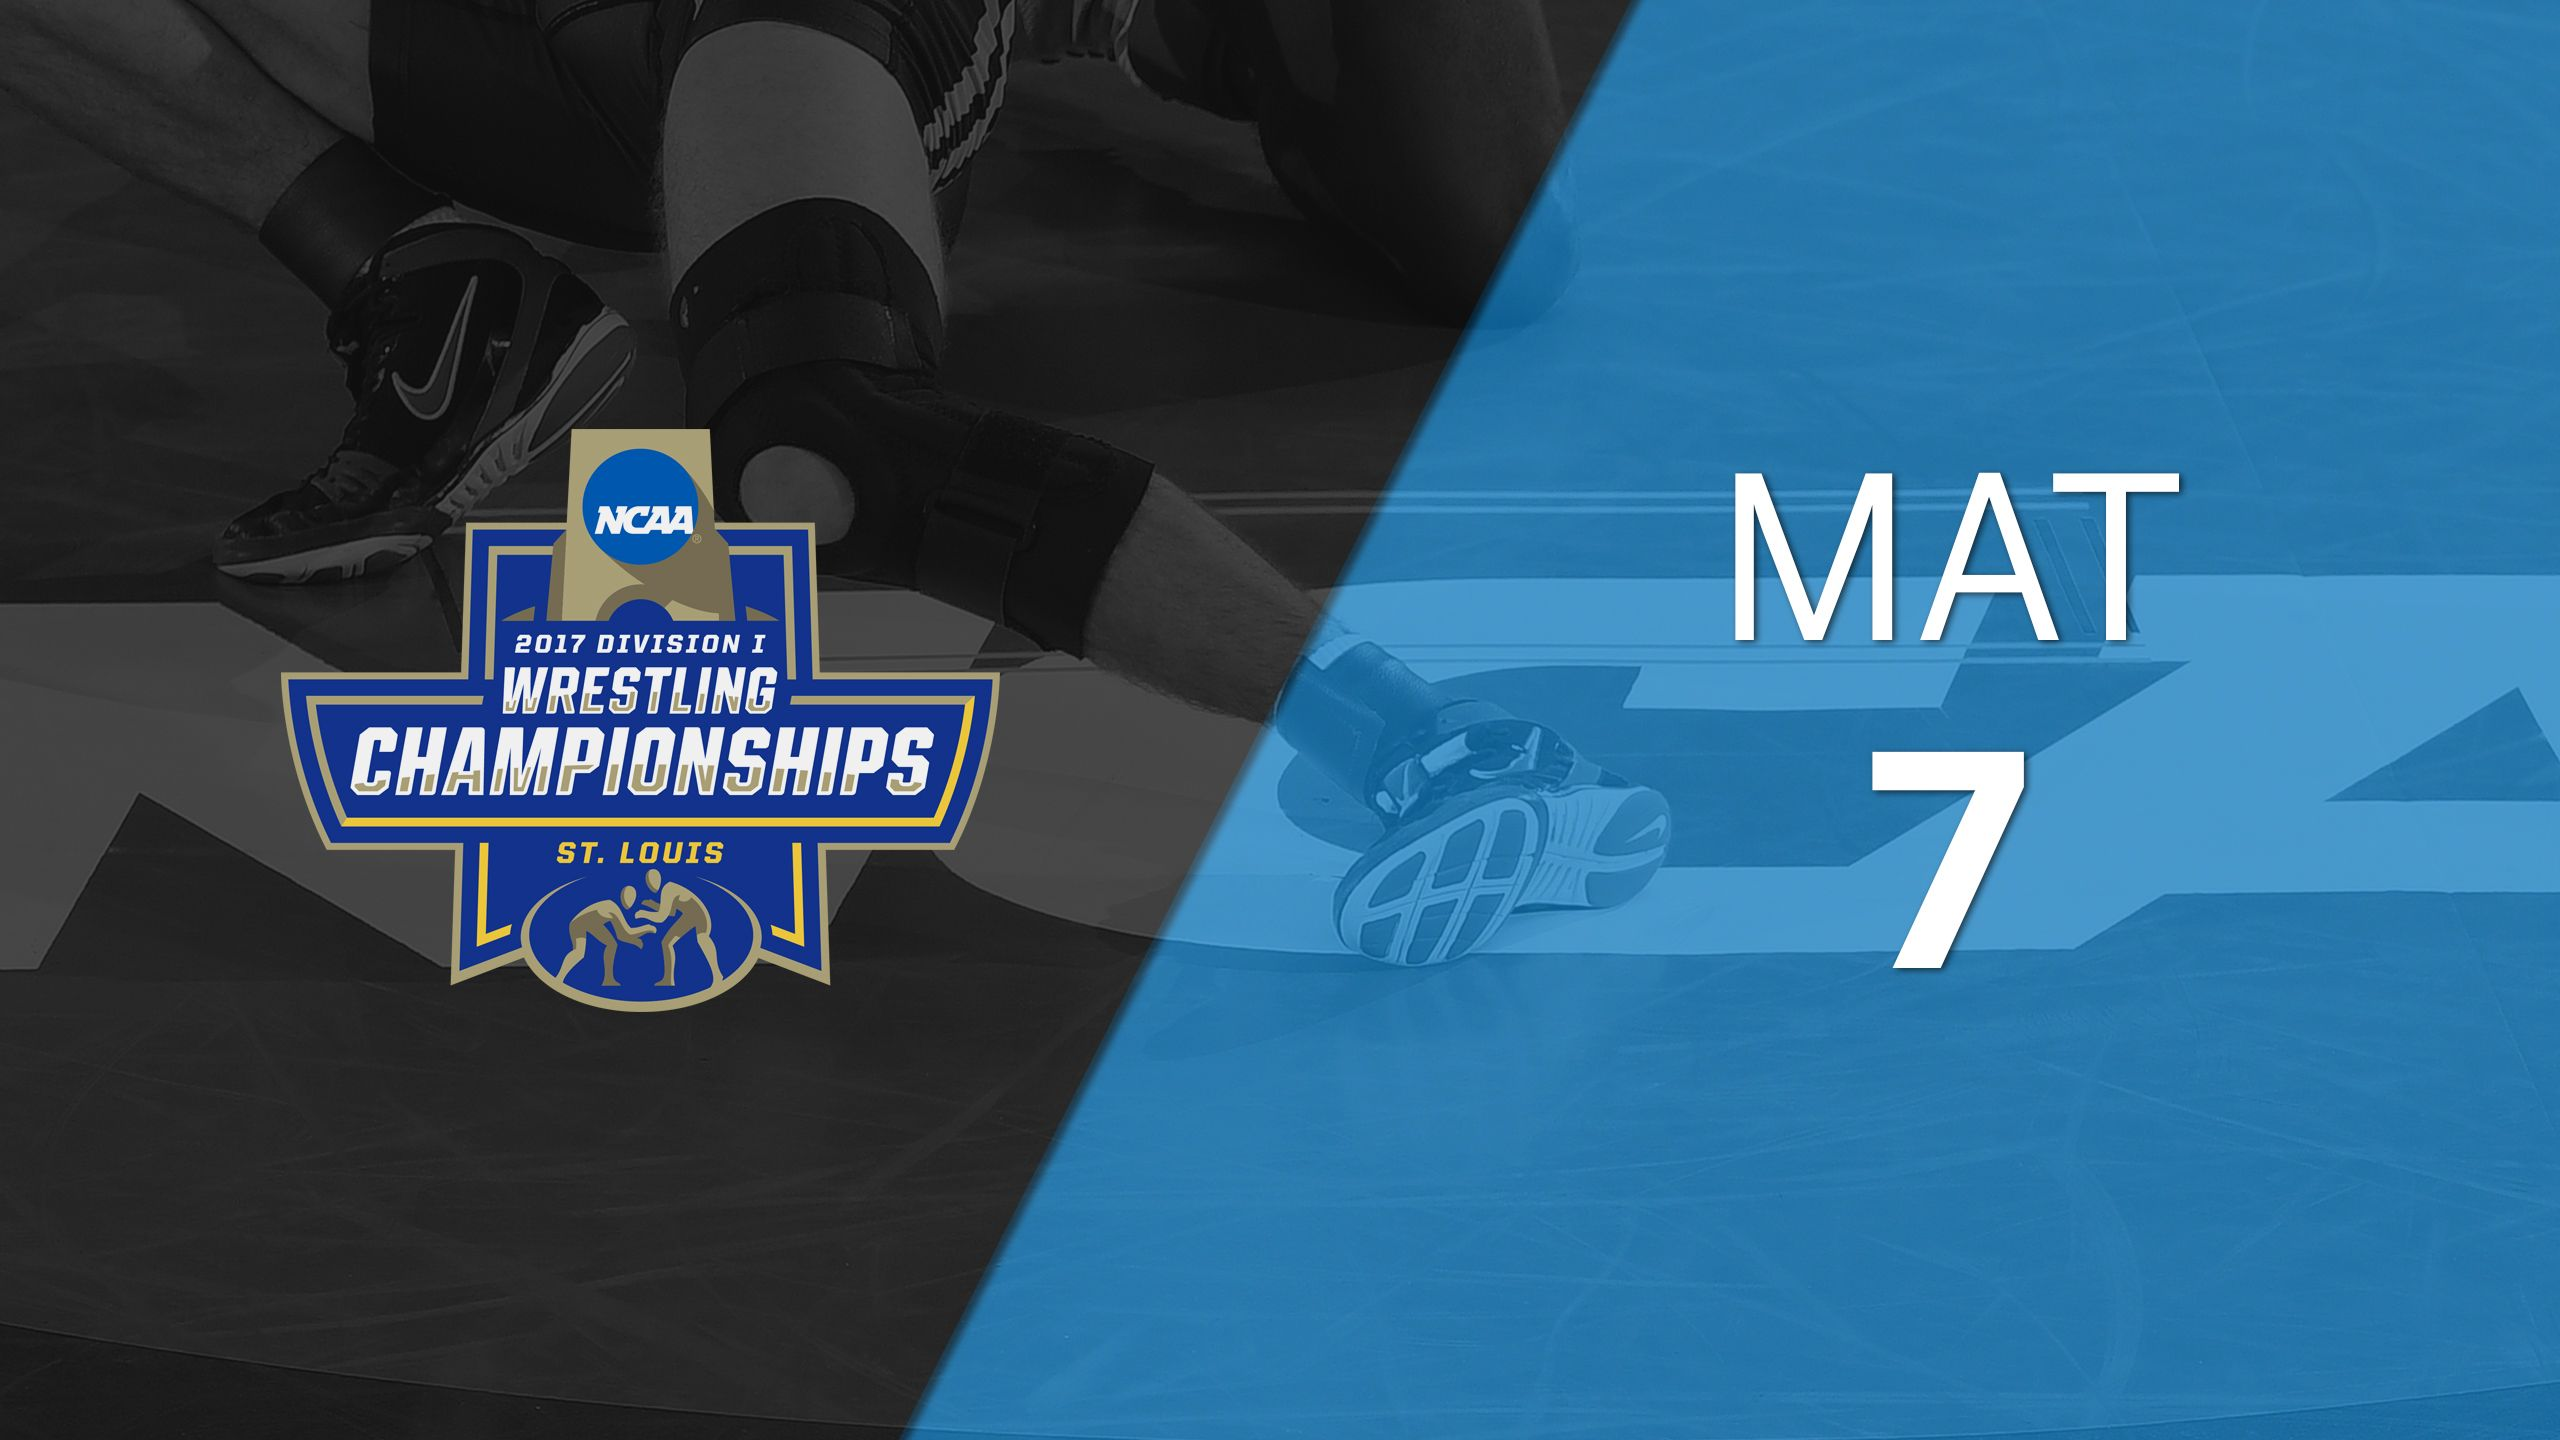 2017 NCAA Wrestling Championships Presented by Northwestern Mutual (Mat 7, First Round)